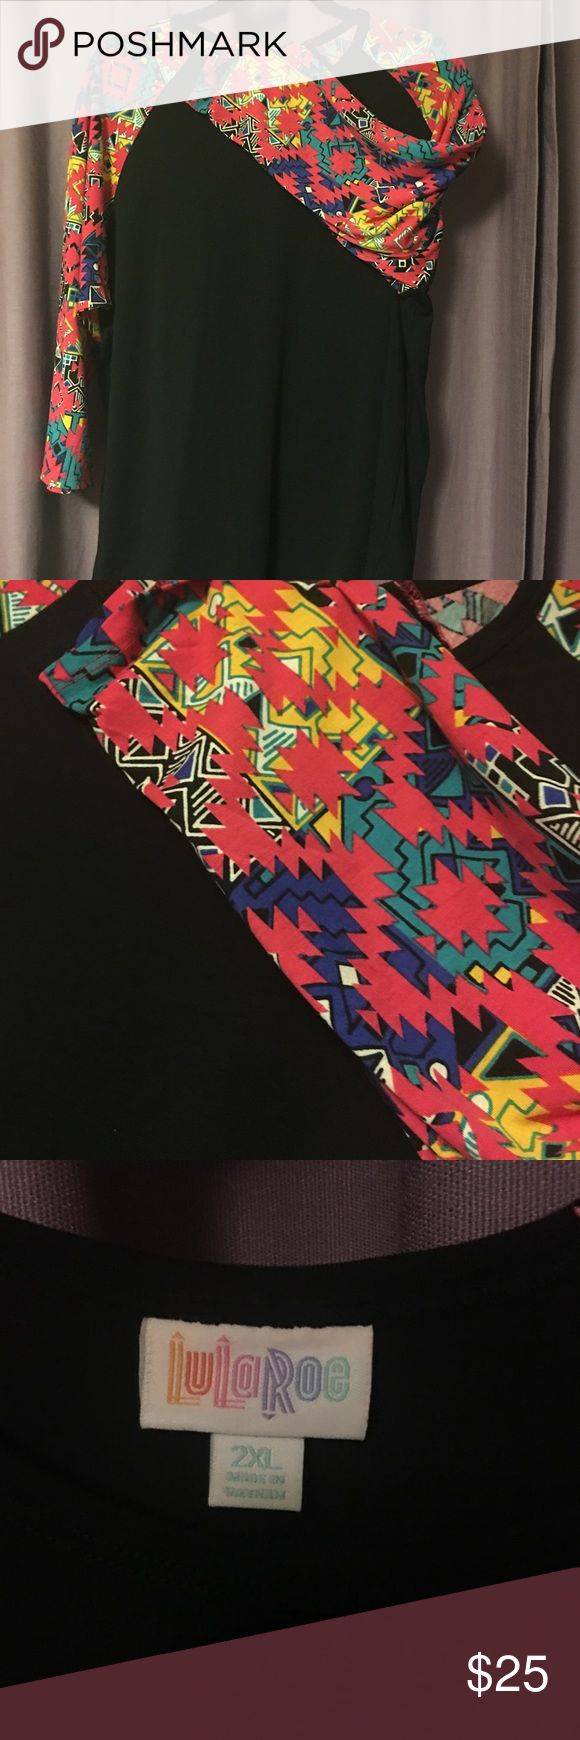 Lularoe Randy - BNWOT Rare black body with pink, teal, yellow, blue and white Aztec design. BNWOT. Never worn. Never washed. Jumped the gun and took tags off before I tried it on. Perfect condition, just not my style. LuLaRoe Tops Tees - Long Sleeve